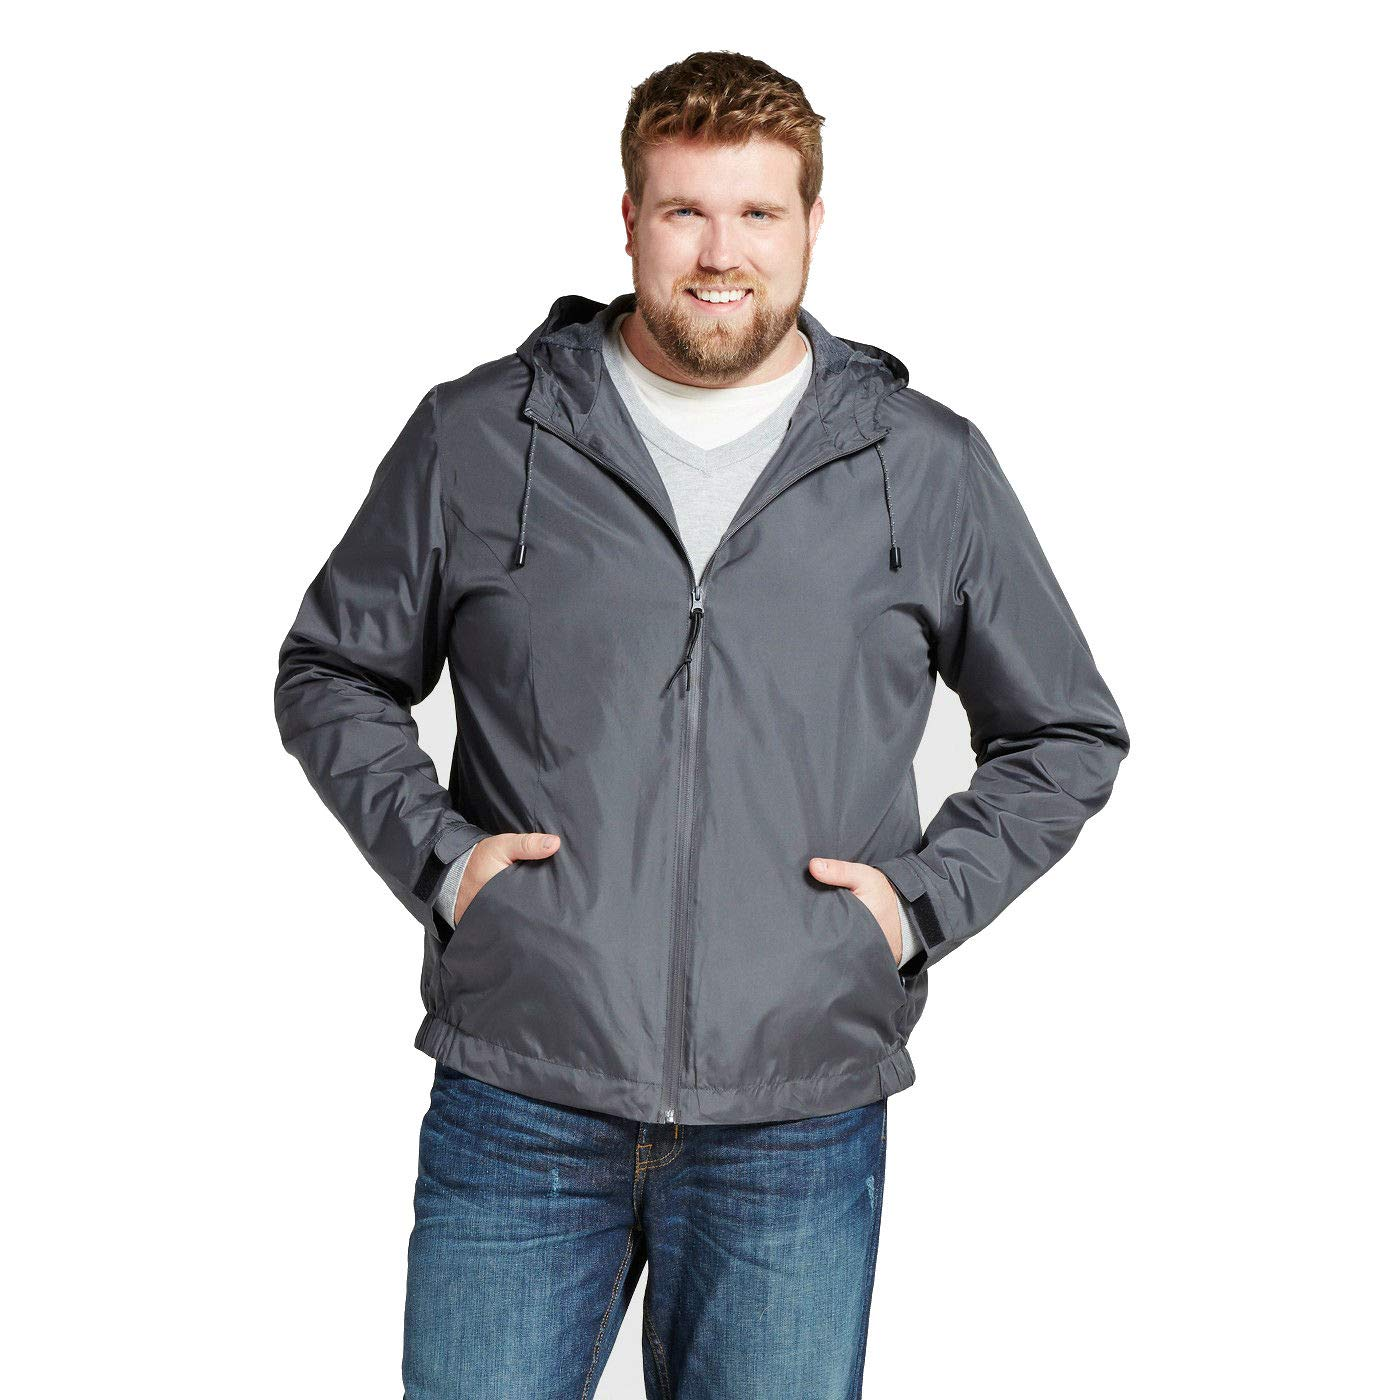 72baea1f596 Goodfellow & Co Men's Big & Tall Standard Fit Windbreaker Jacket at ...